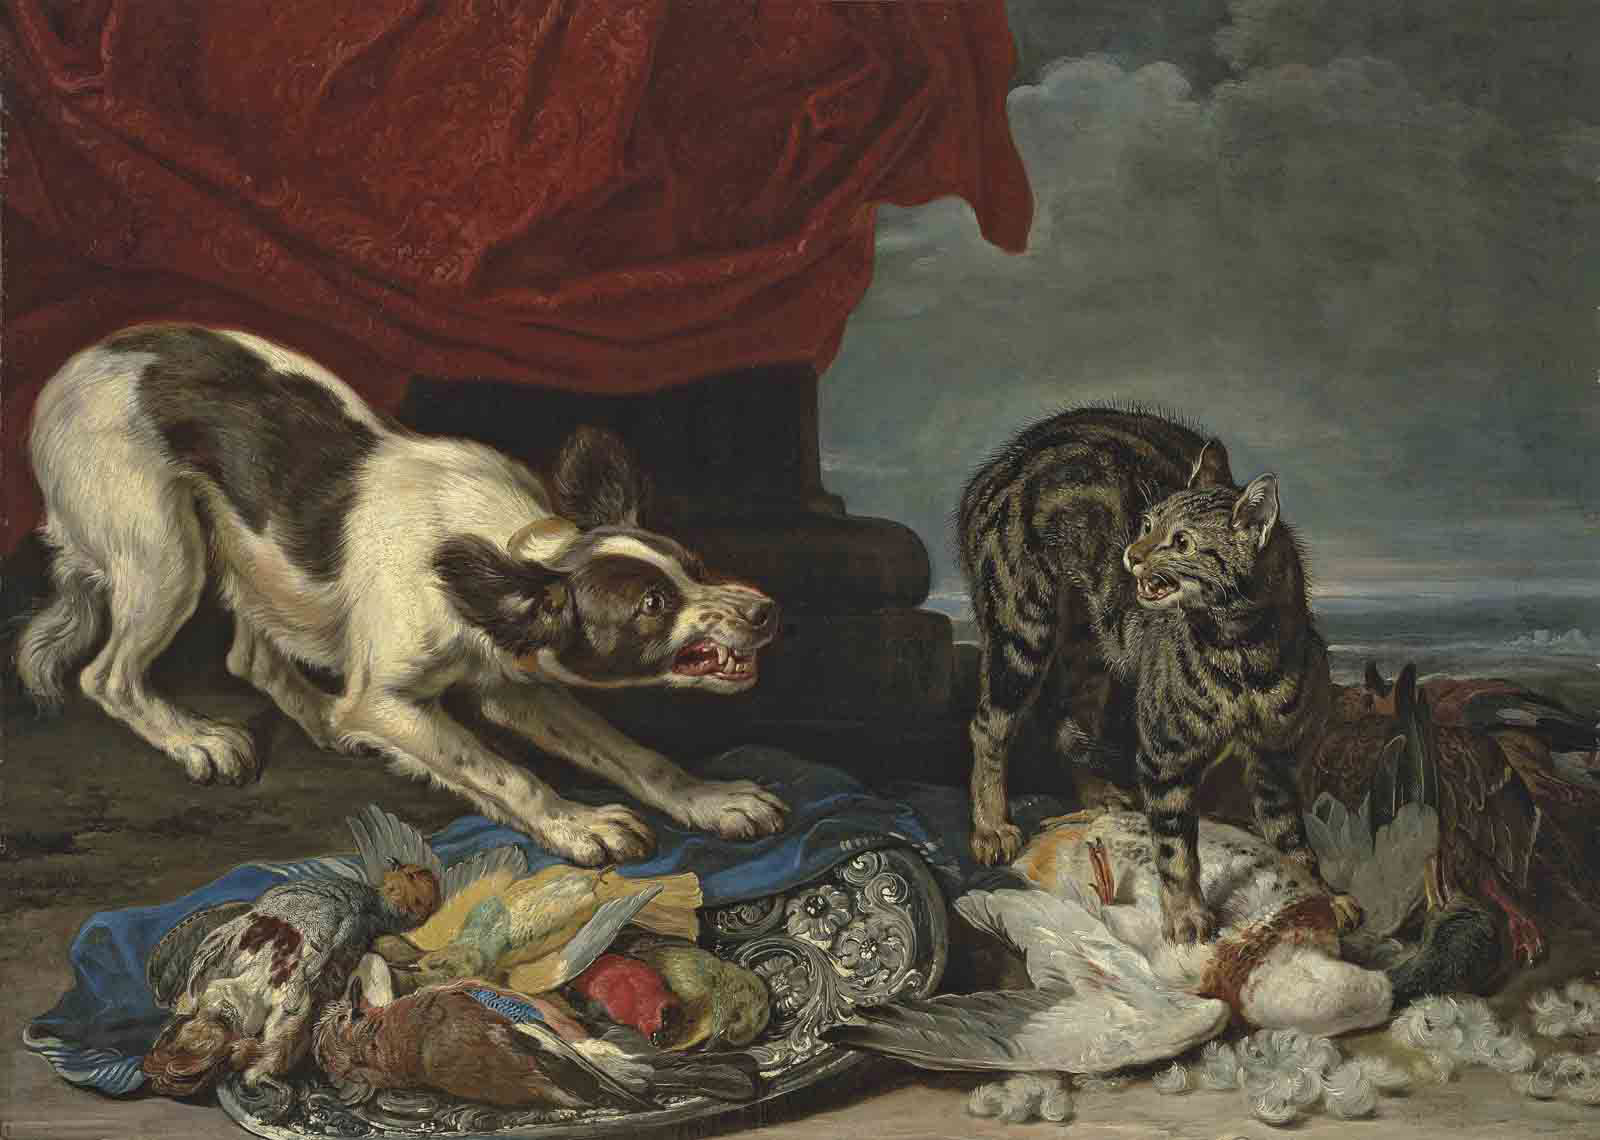 A cat and a dog fighting over fowl, a column with draped curtain and coastal landscape beyond